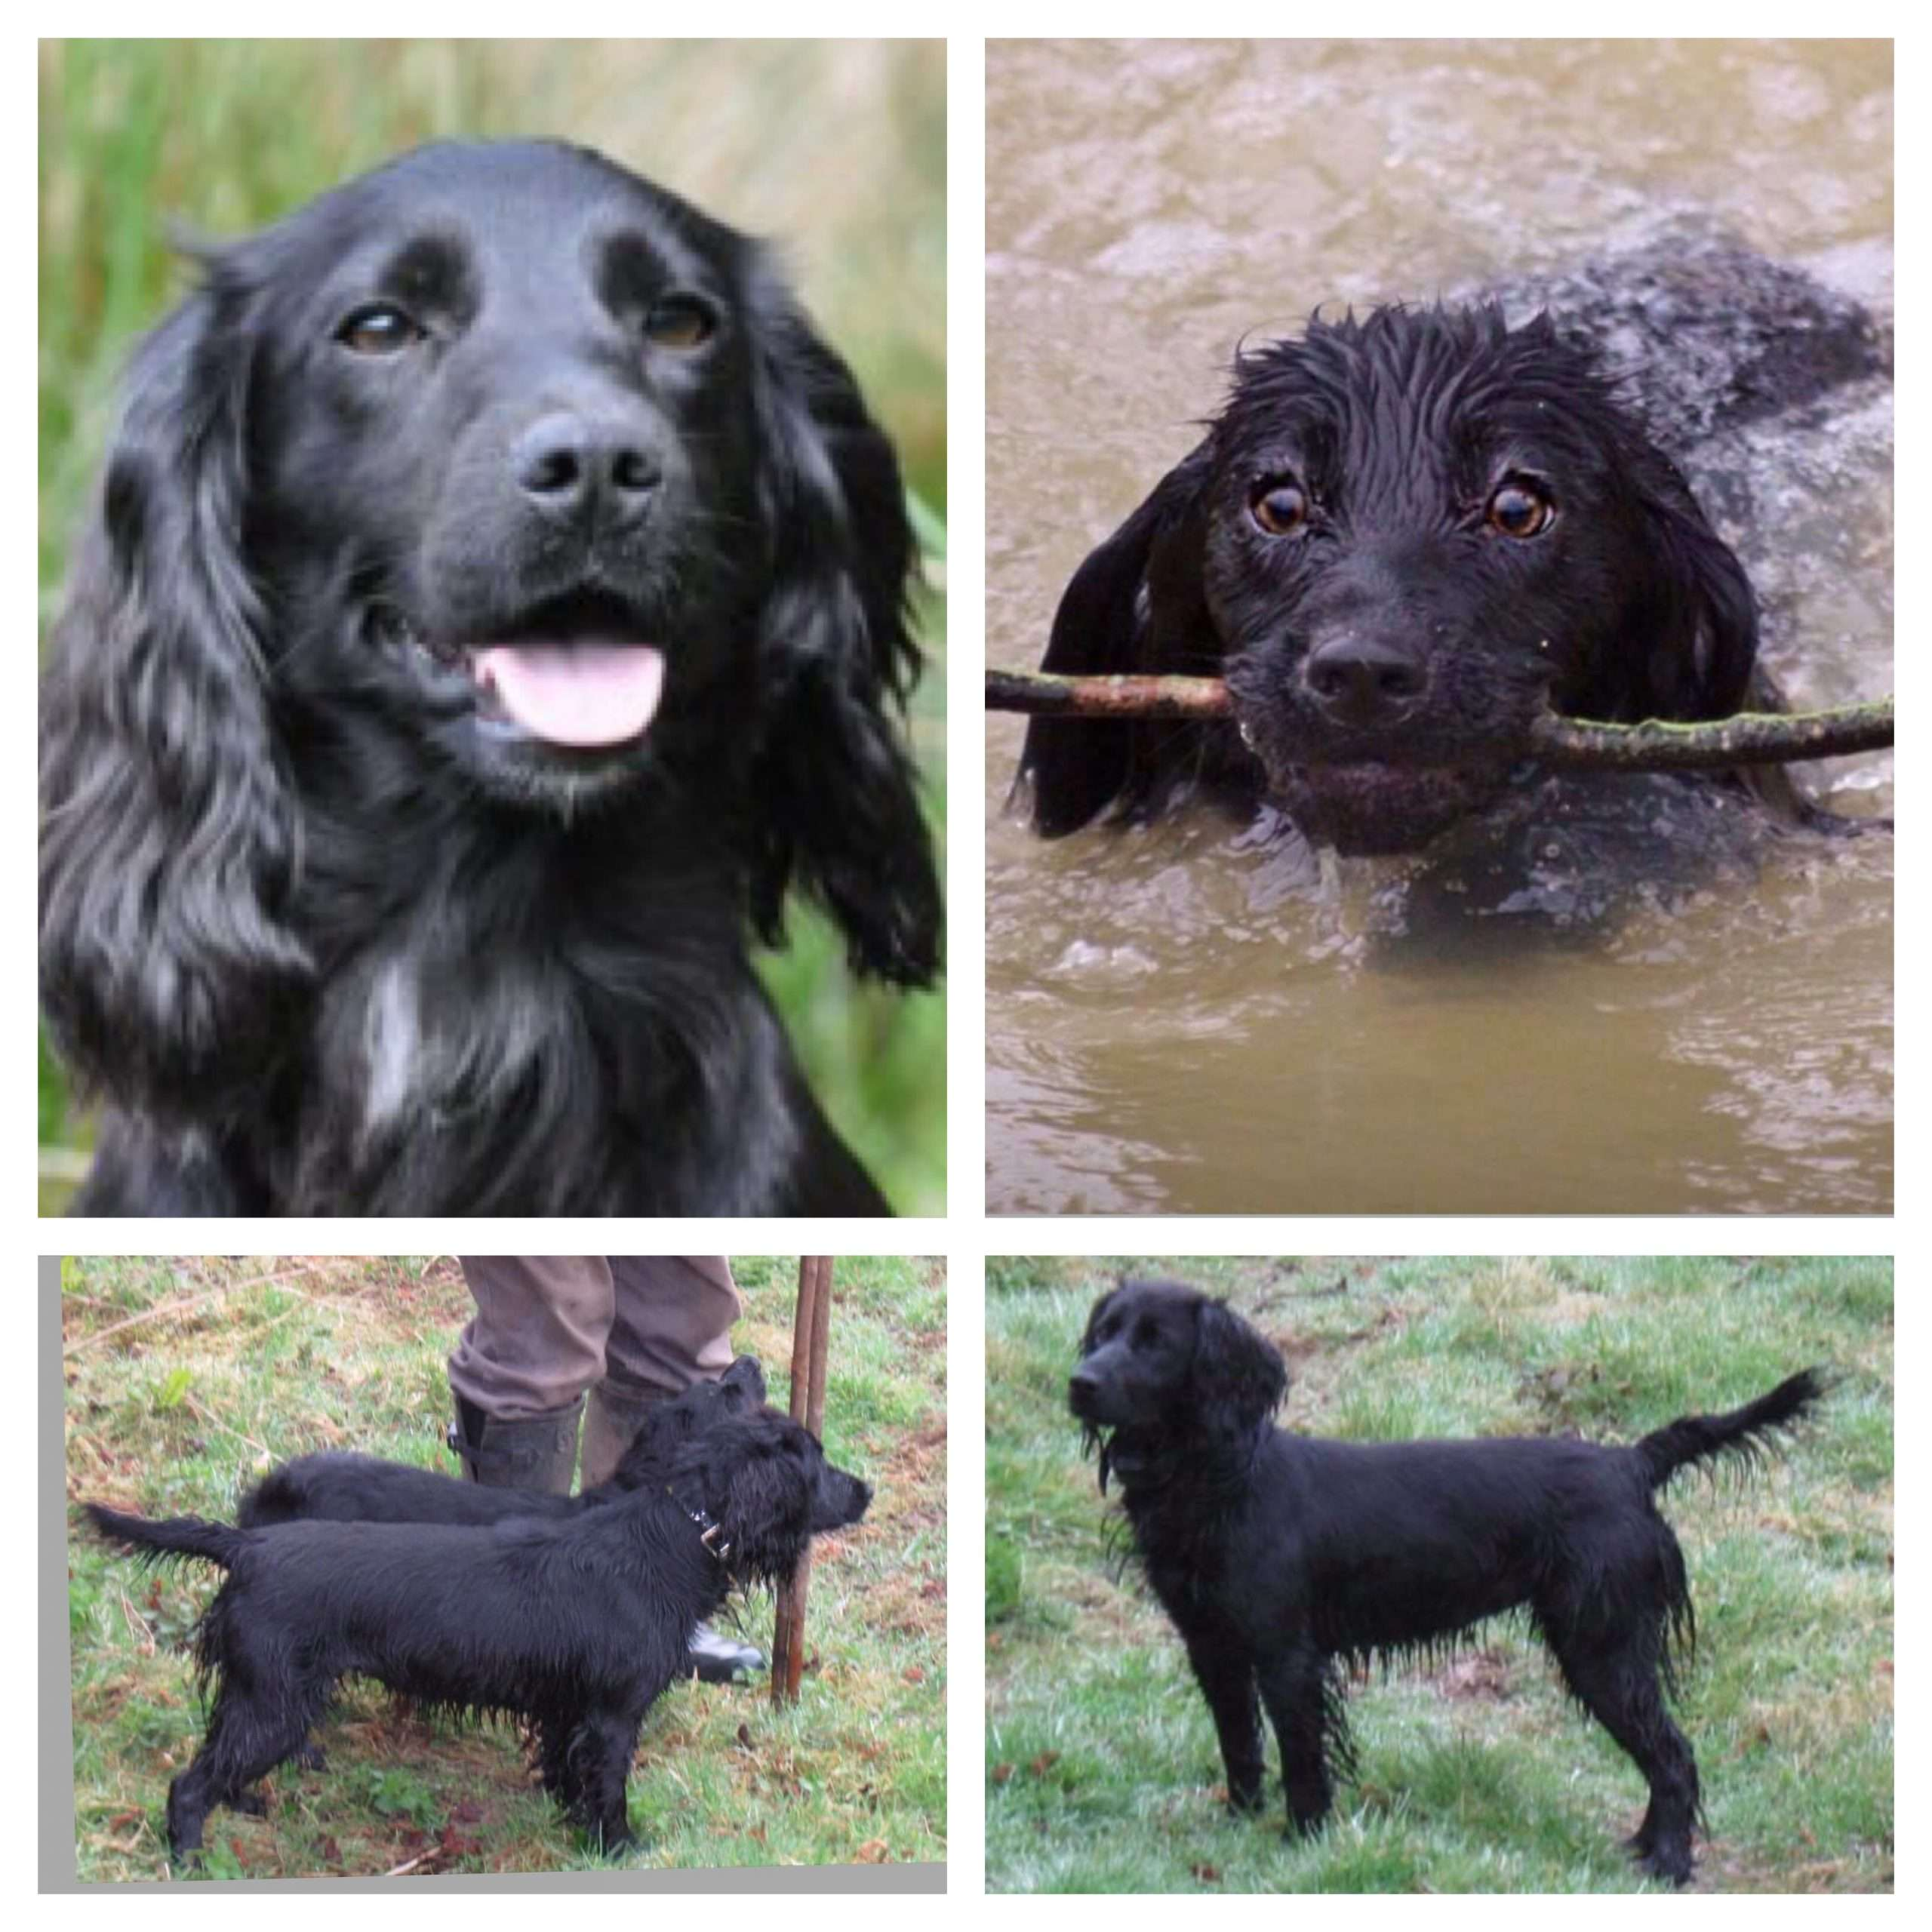 Two dogs stolen from secure kennels in Bodiam, East Sussex #PetTheftReform.